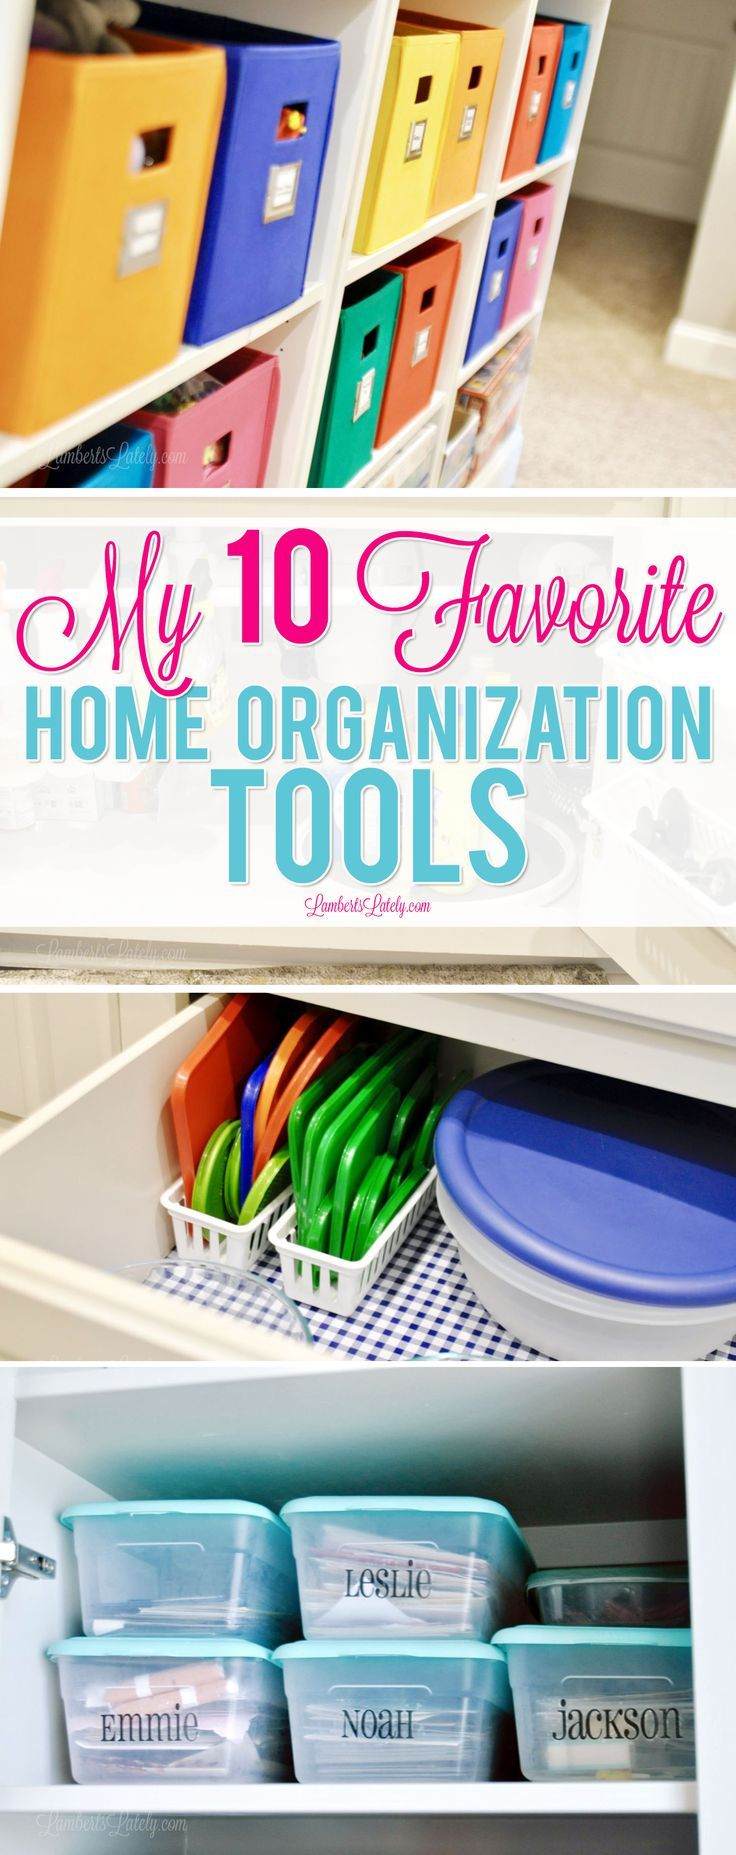 My 10 Favorite Home Organization Tools #storagesolutions